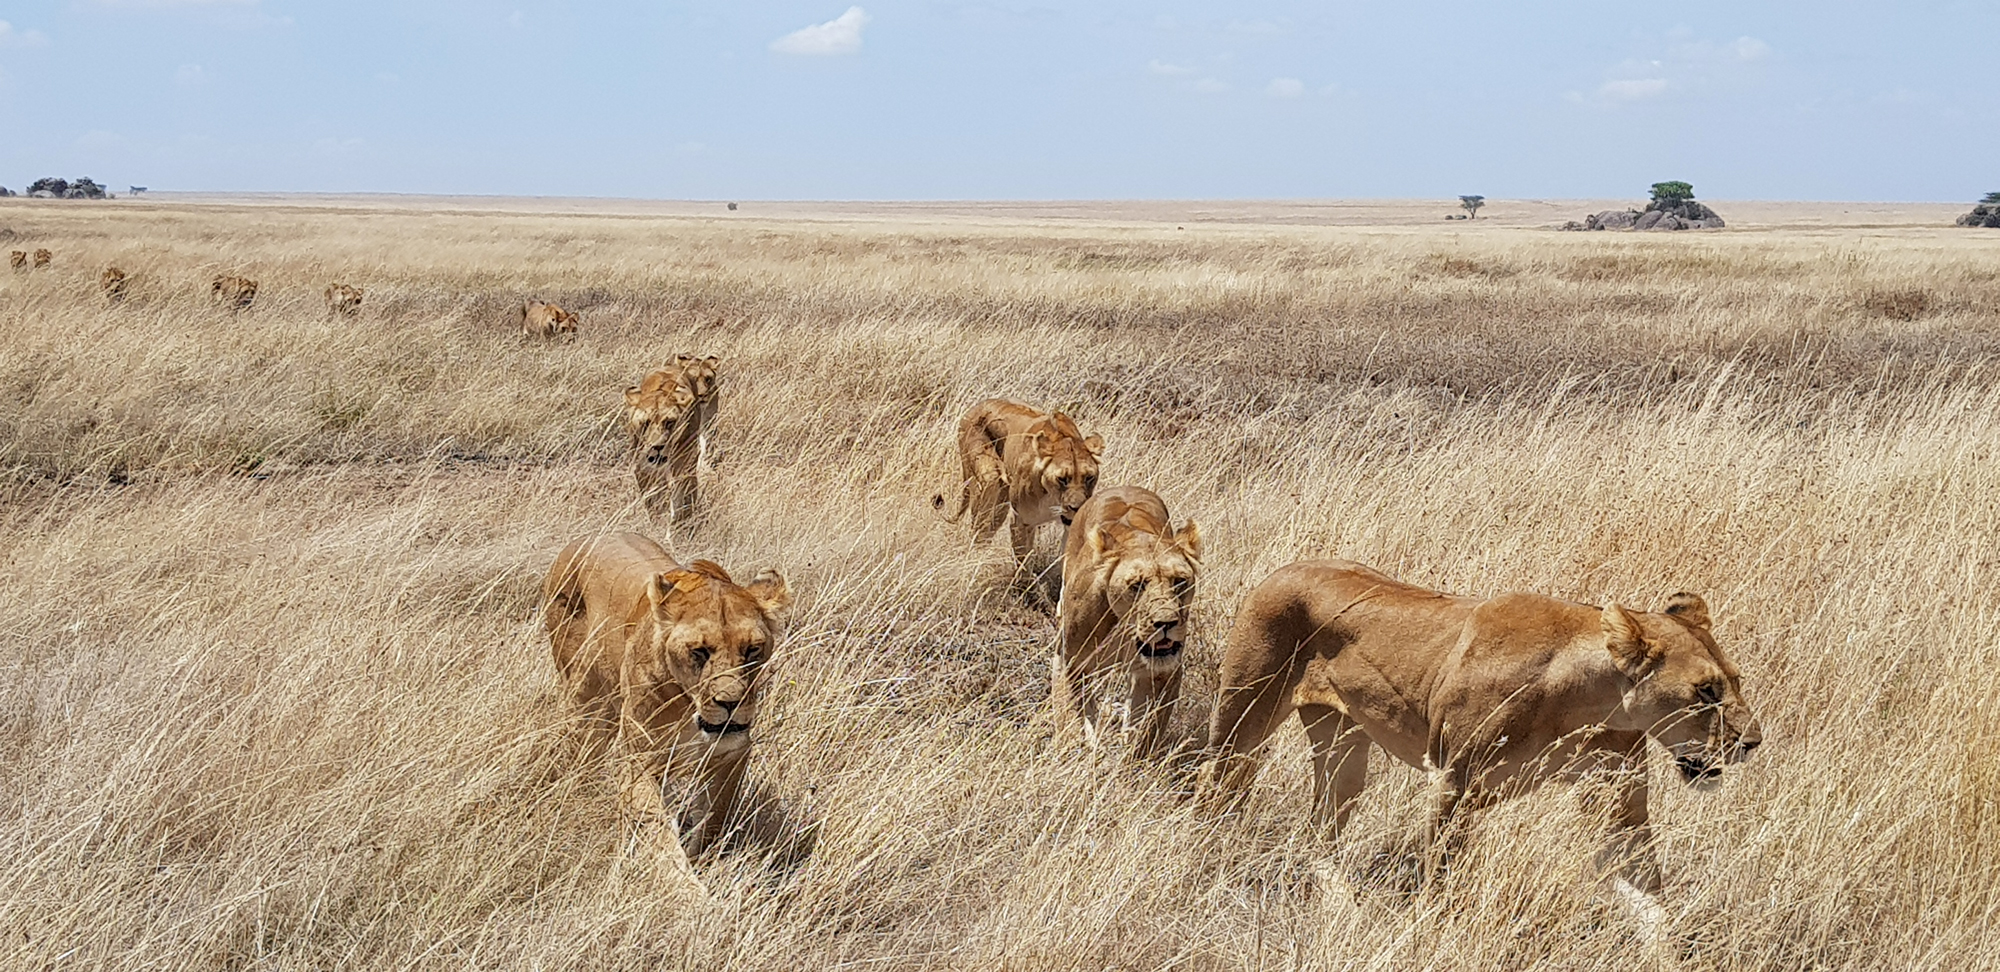 Pride of lions in the Serengeti in Tanzania